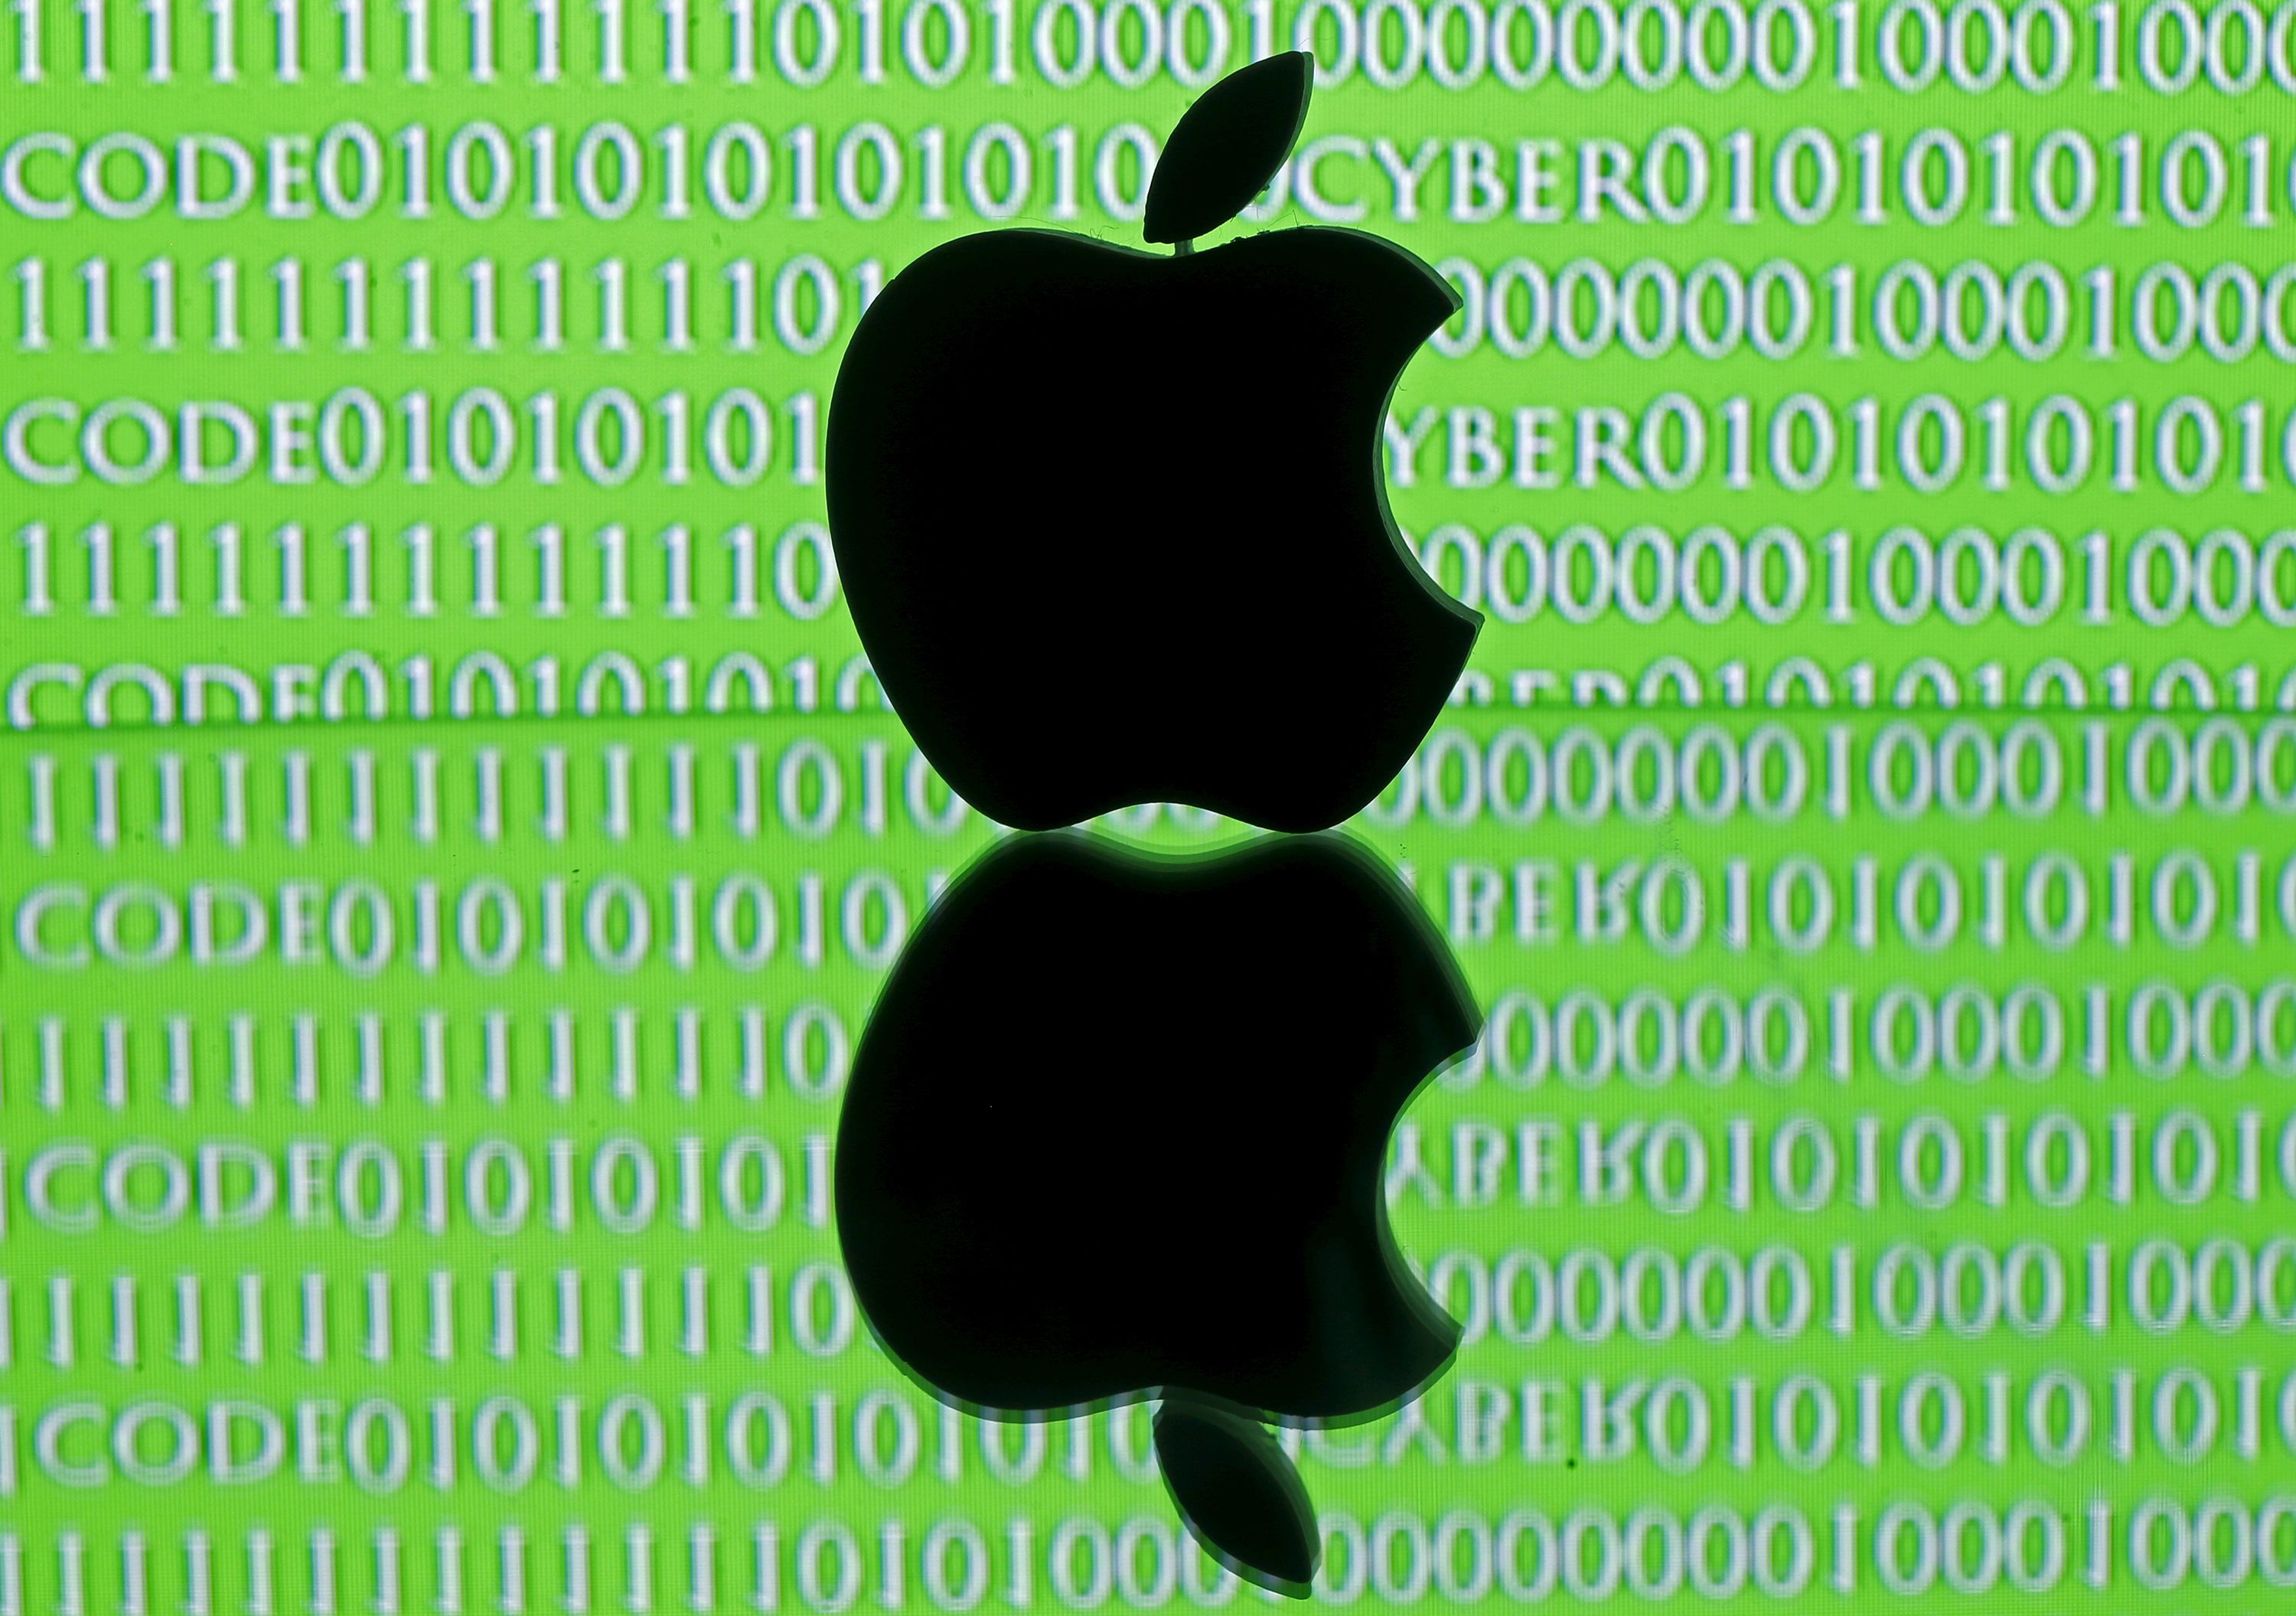 Apple Flaw could Allow Hackers to Access Devices Via